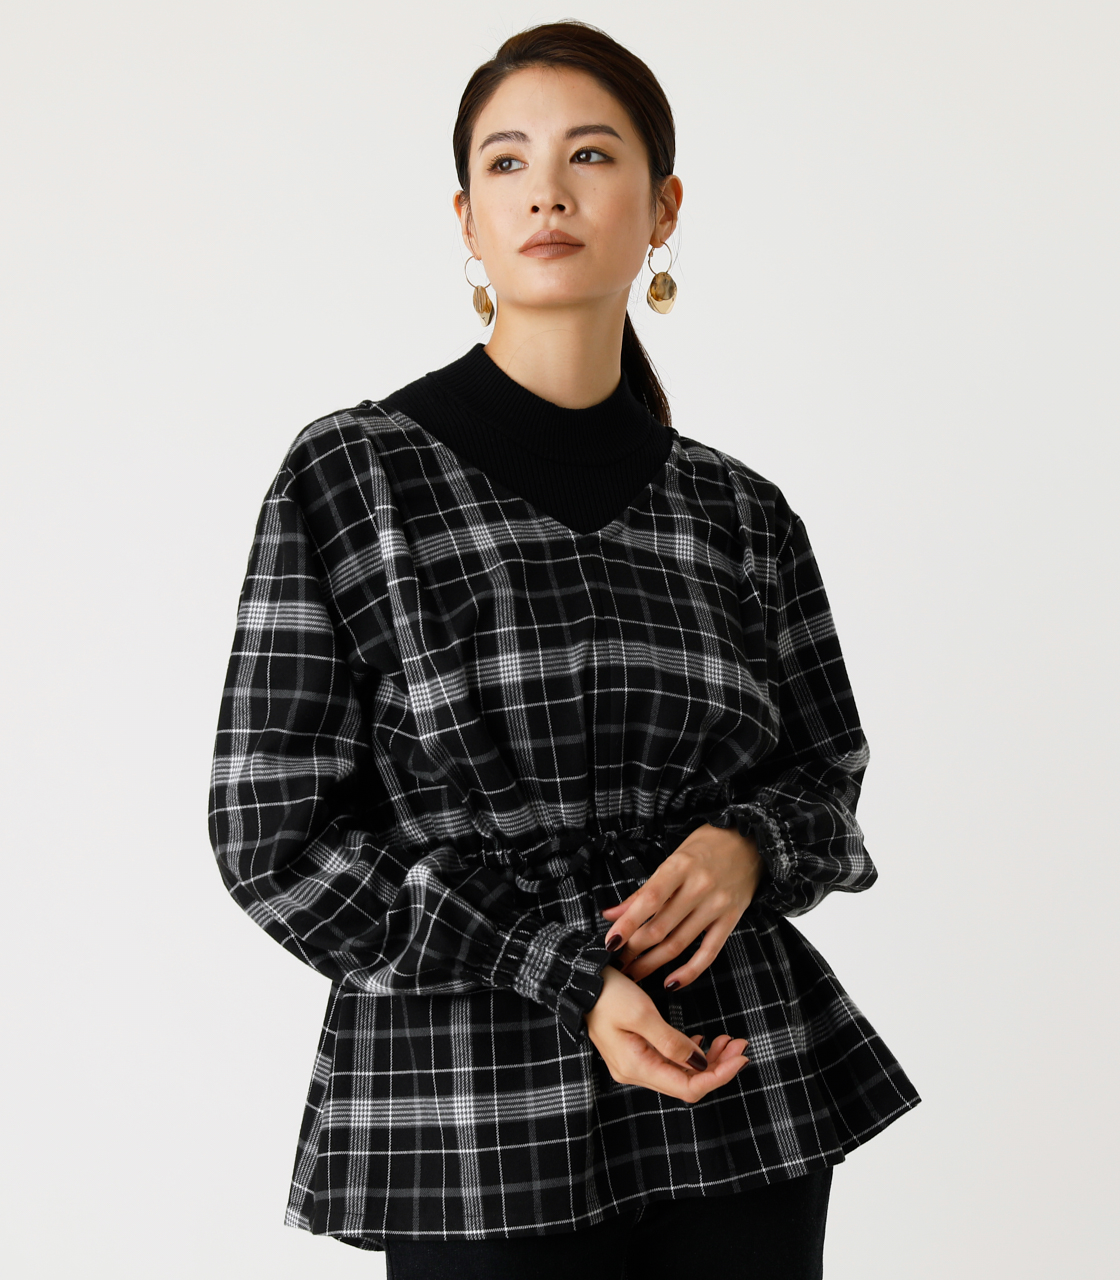 PEPLUM CHECK BLOUSE/ペプラムチェックブラウス 詳細画像 柄BLK 1